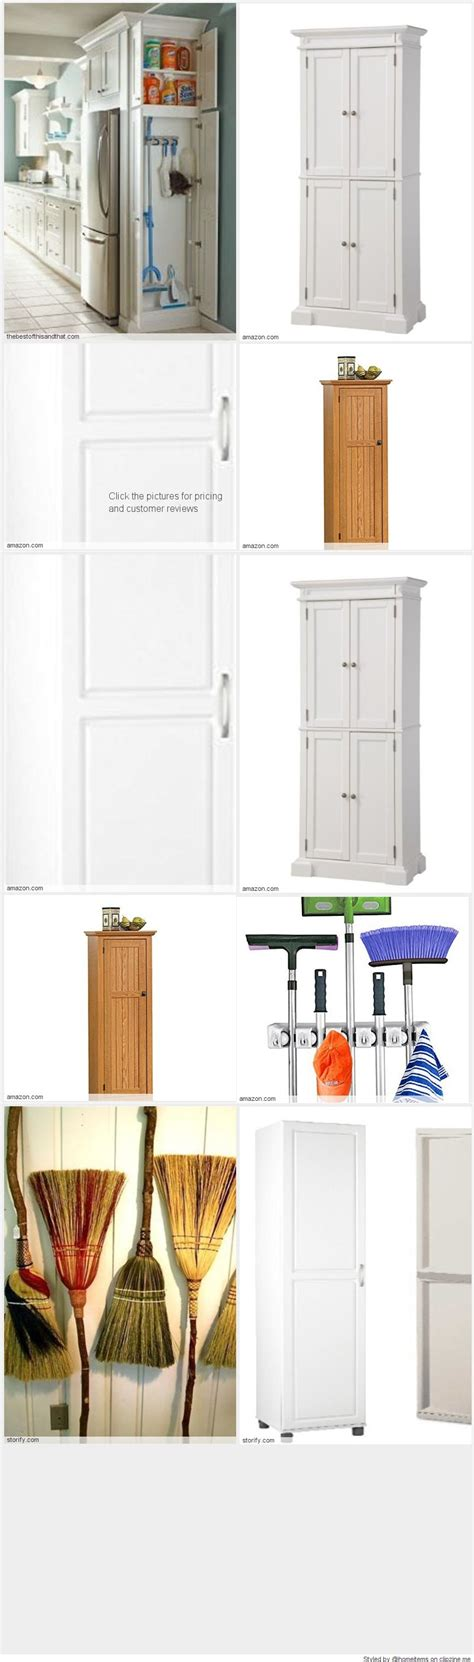 Broom Storage Cabinet Free Standing Broom Closet Cabinet For The Kitchen Or Garage Free Standing Broom Closet